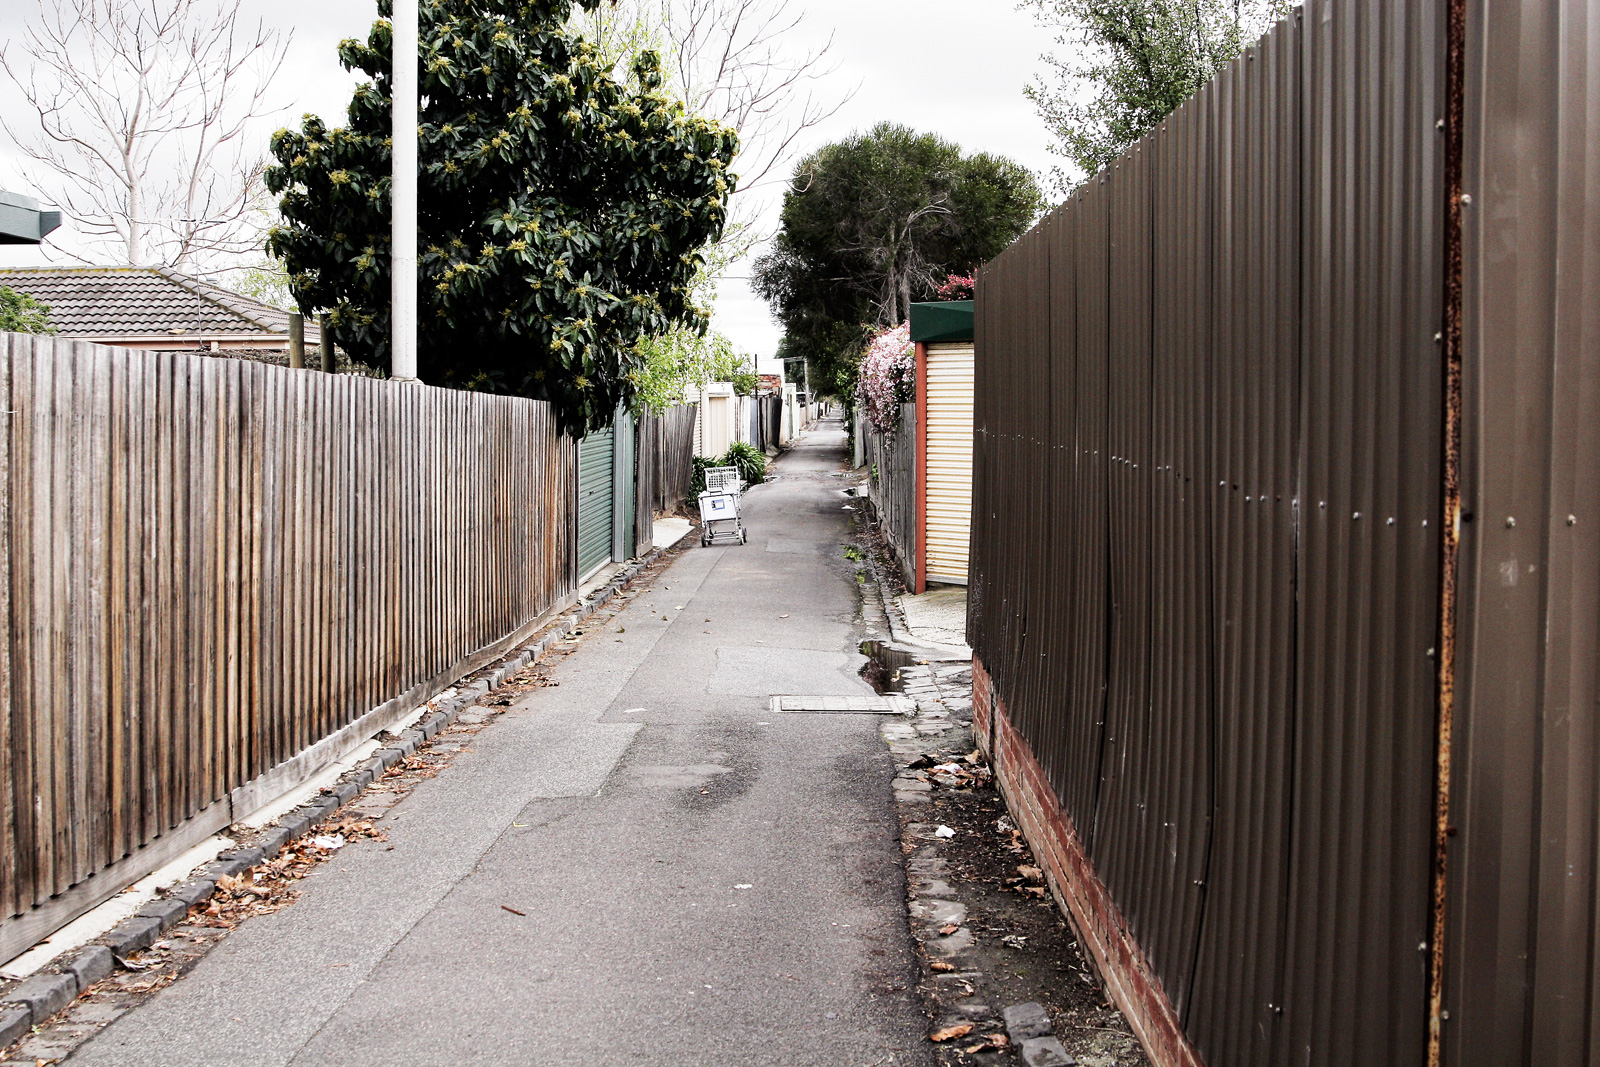 Alley in Melbourne - Quelle: wikimedia